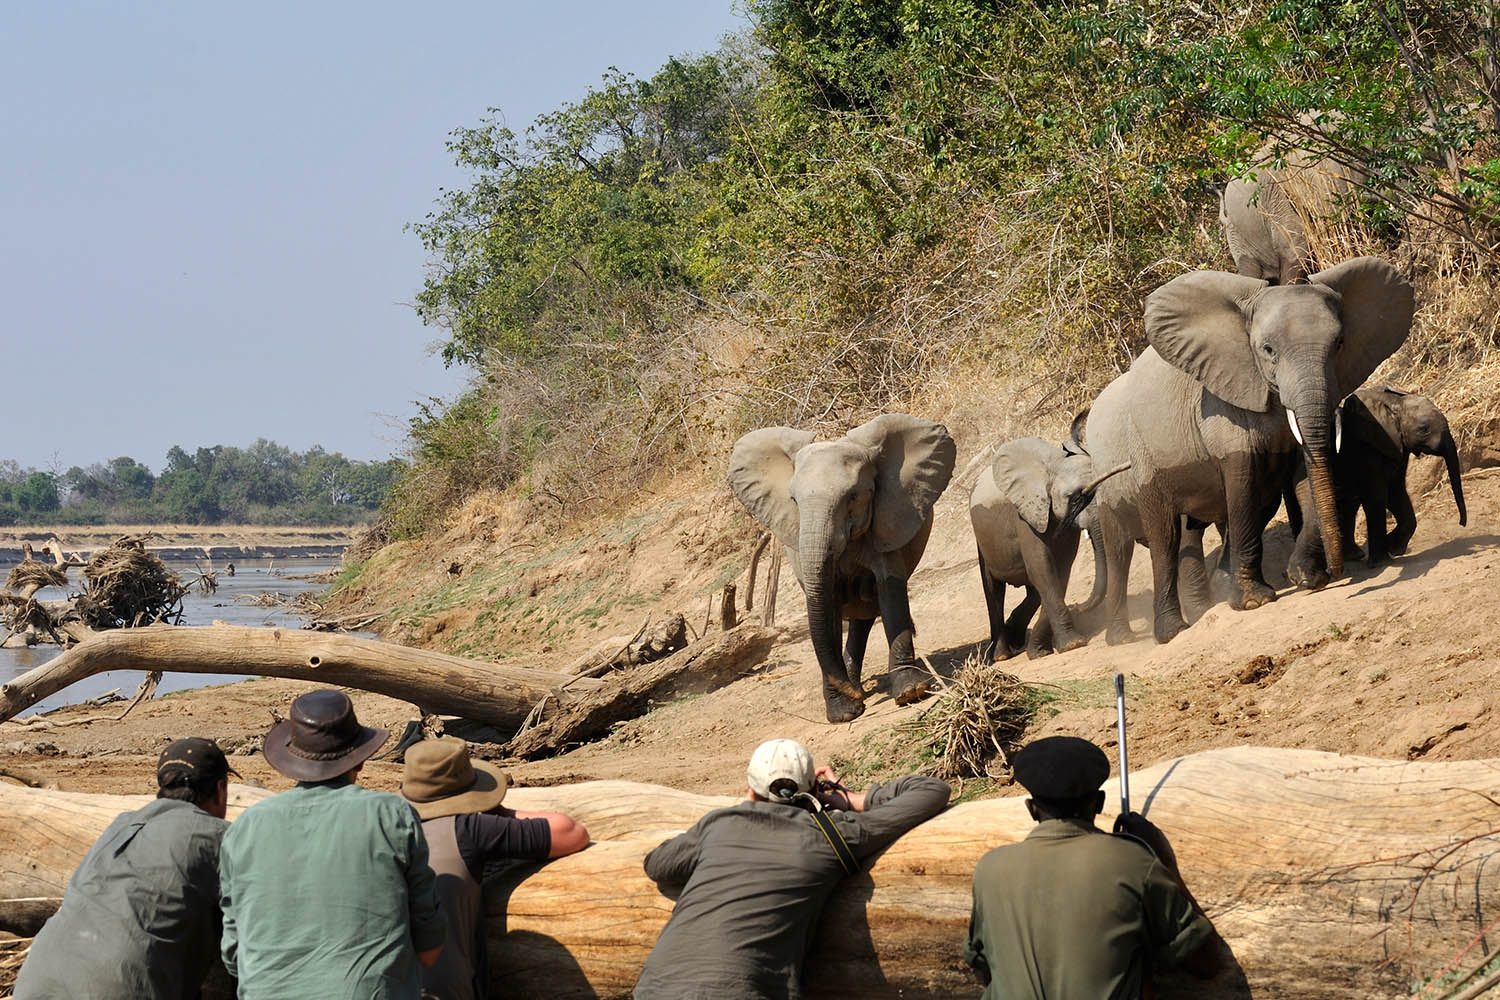 kaingo-camp-luxury-lodge-zambia-in-style-tours-safari-packages-lodges-south-luangwa-national-park-elephant-hide